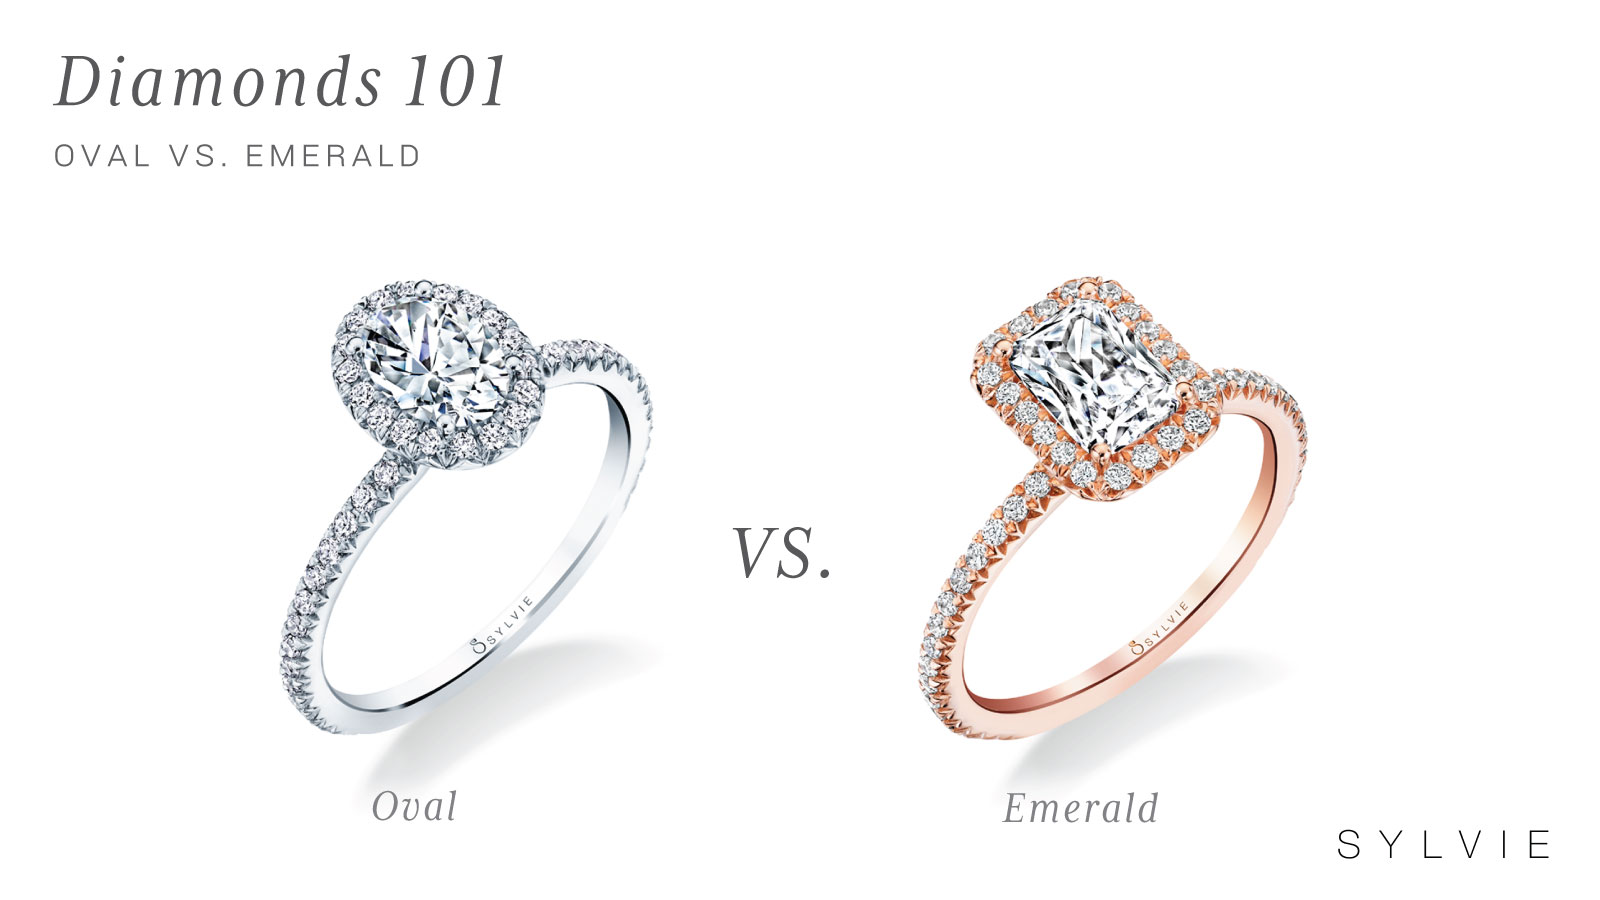 Oval Vs Emerald Engagement Rings